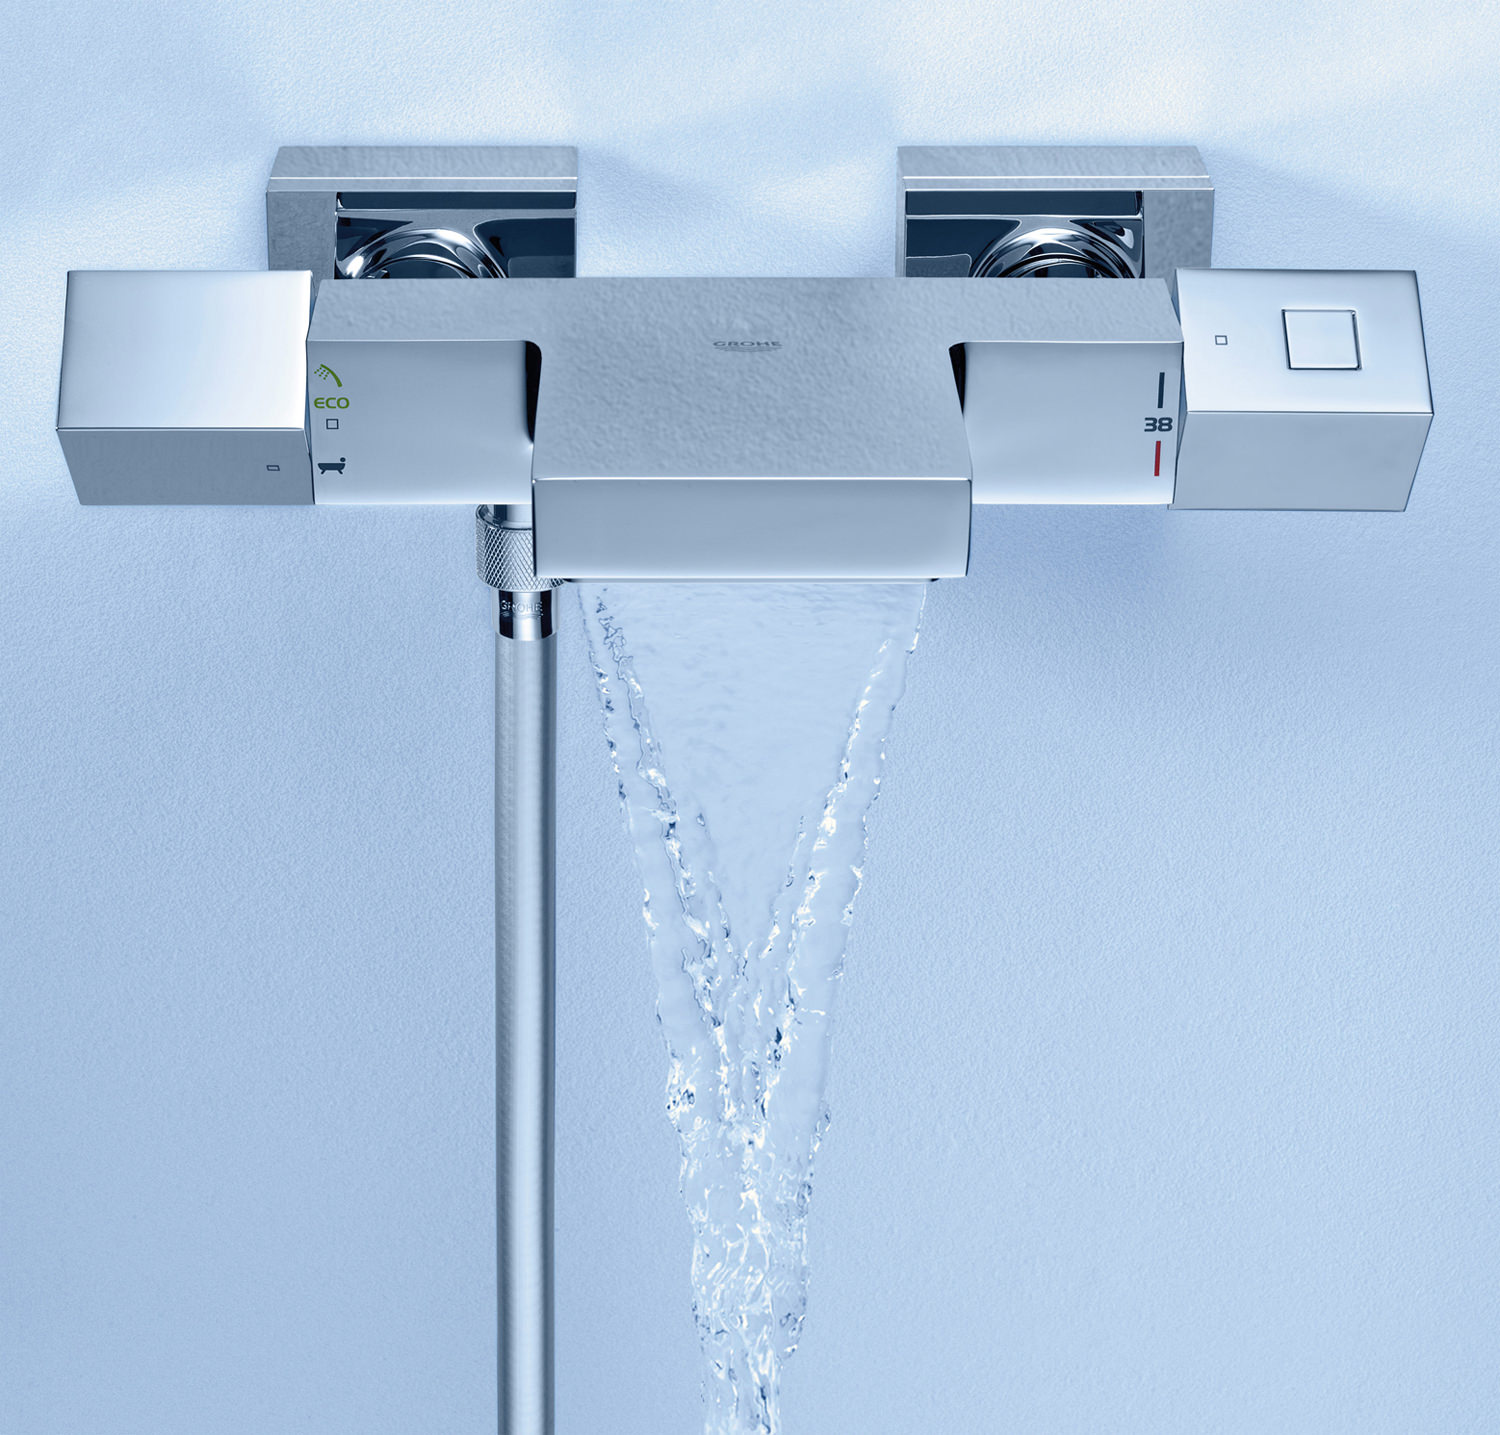 grohe grohtherm cube wall mount thermostatic bath shower grohe grohtherm 1000 thermostatic bath shower mixer achica